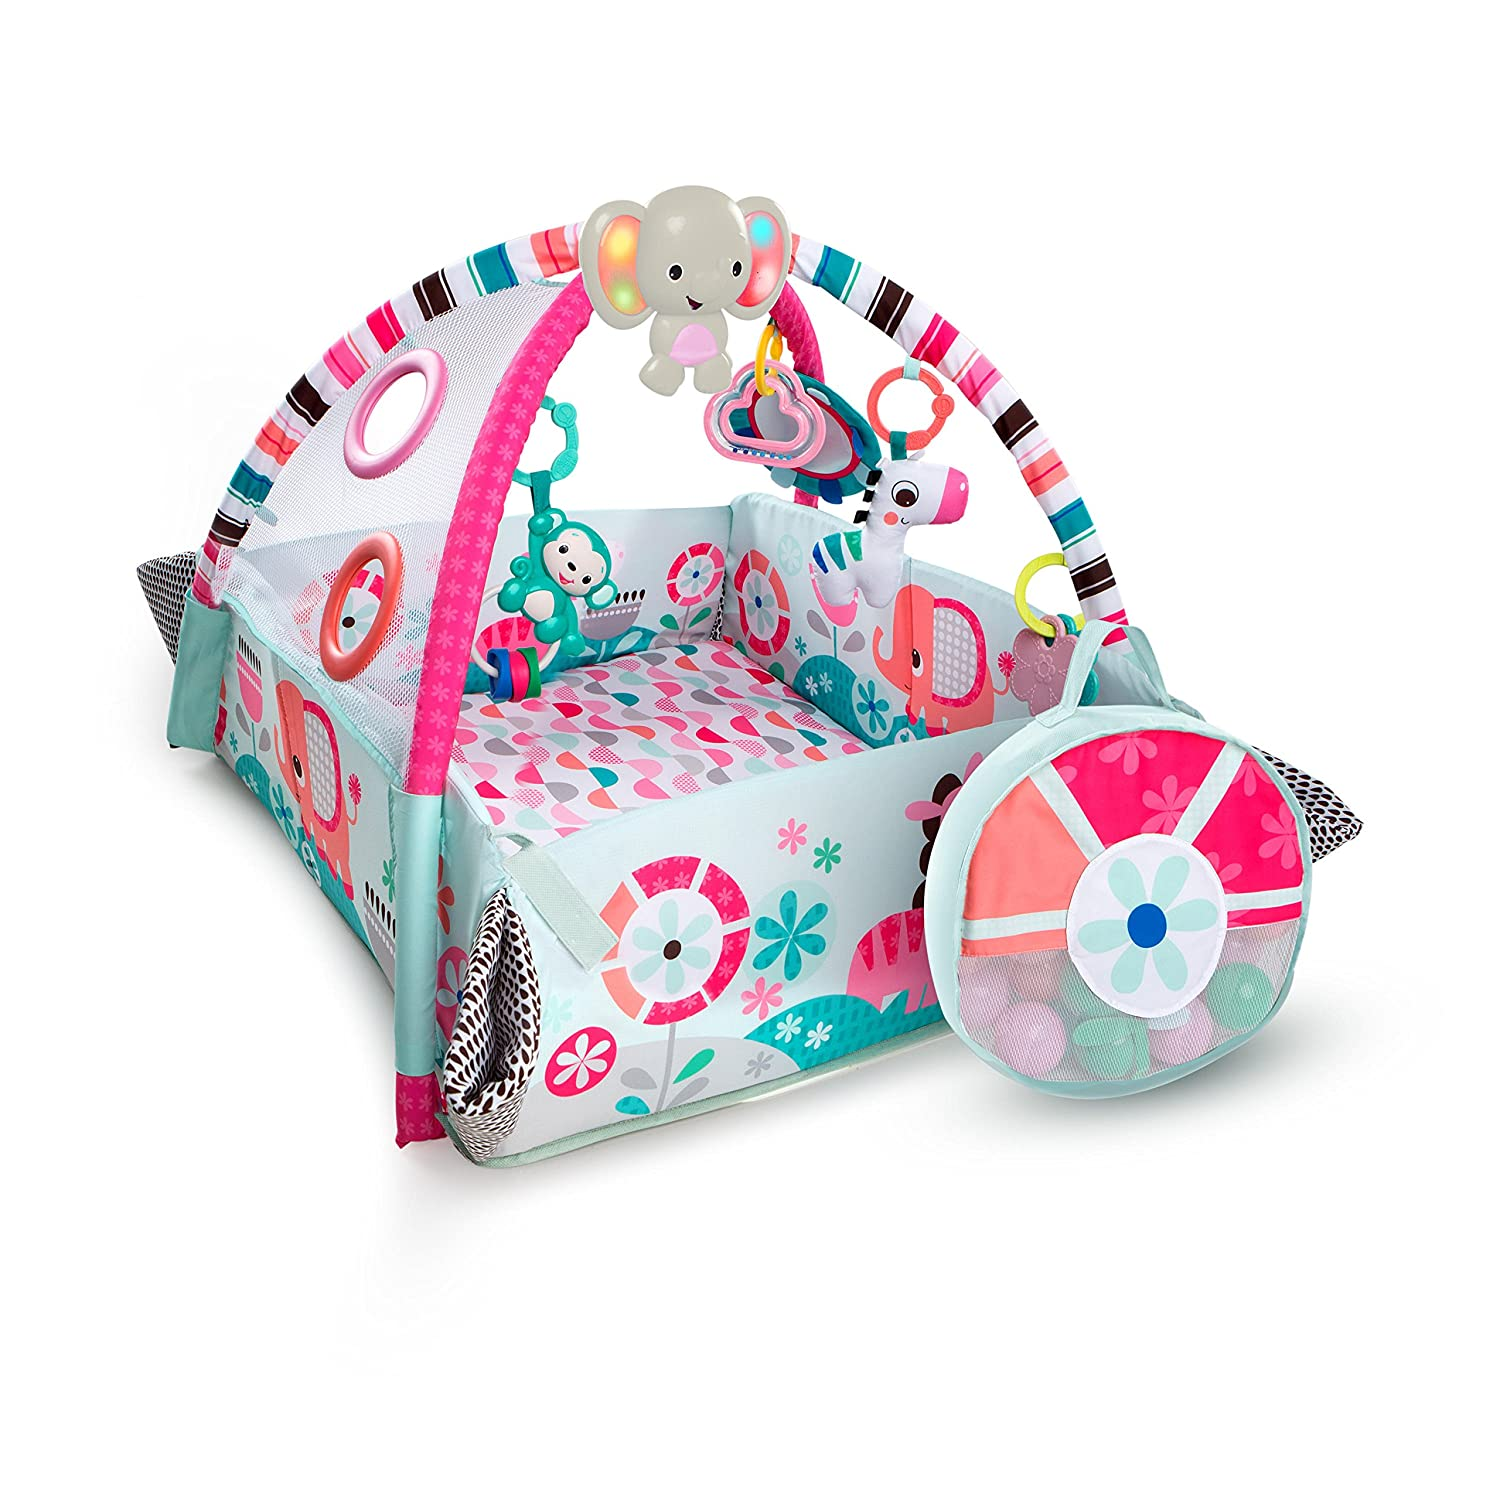 Bright Starts 5-in-1 Your Play Pink Activity Gym 10786